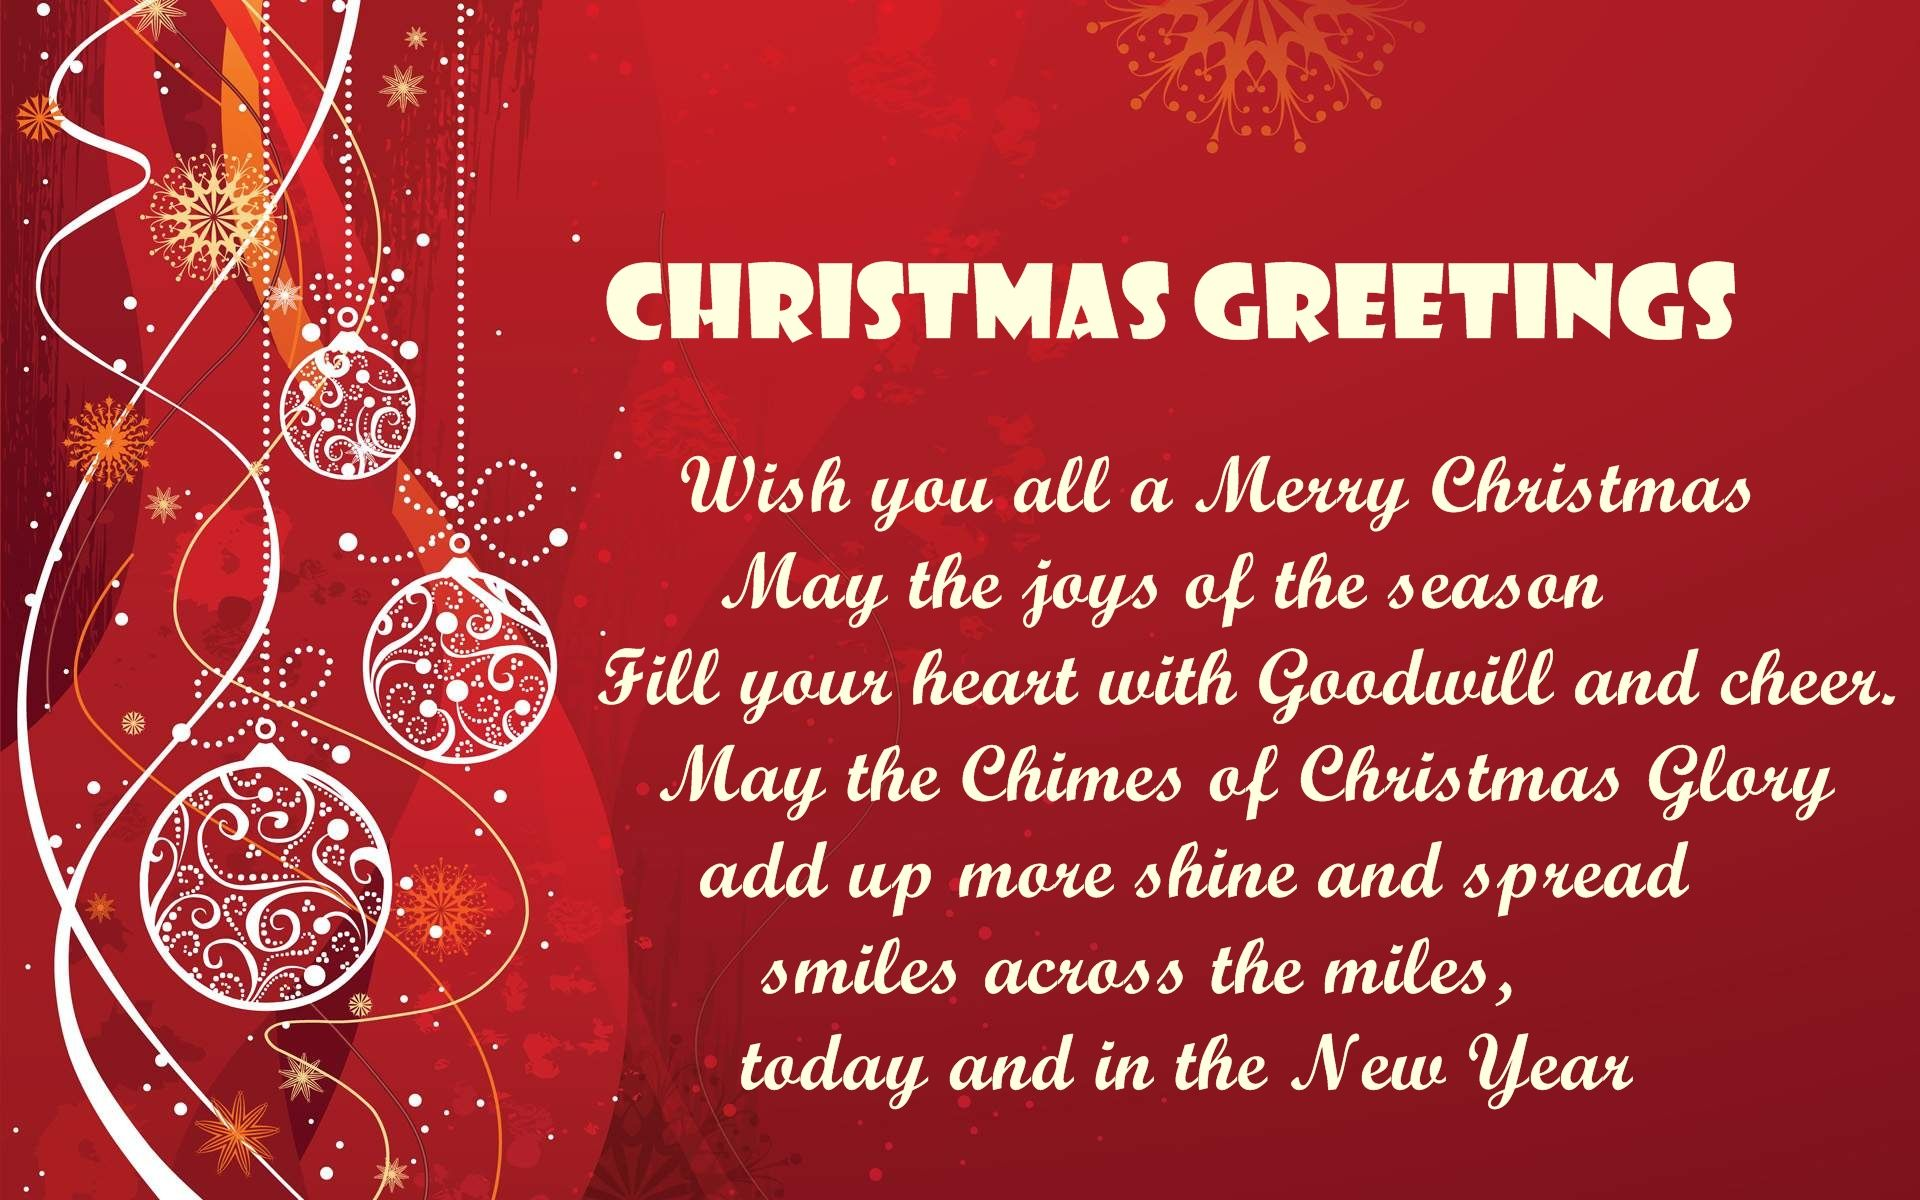 Merry Christmas Messages Funny Inspirational christmas